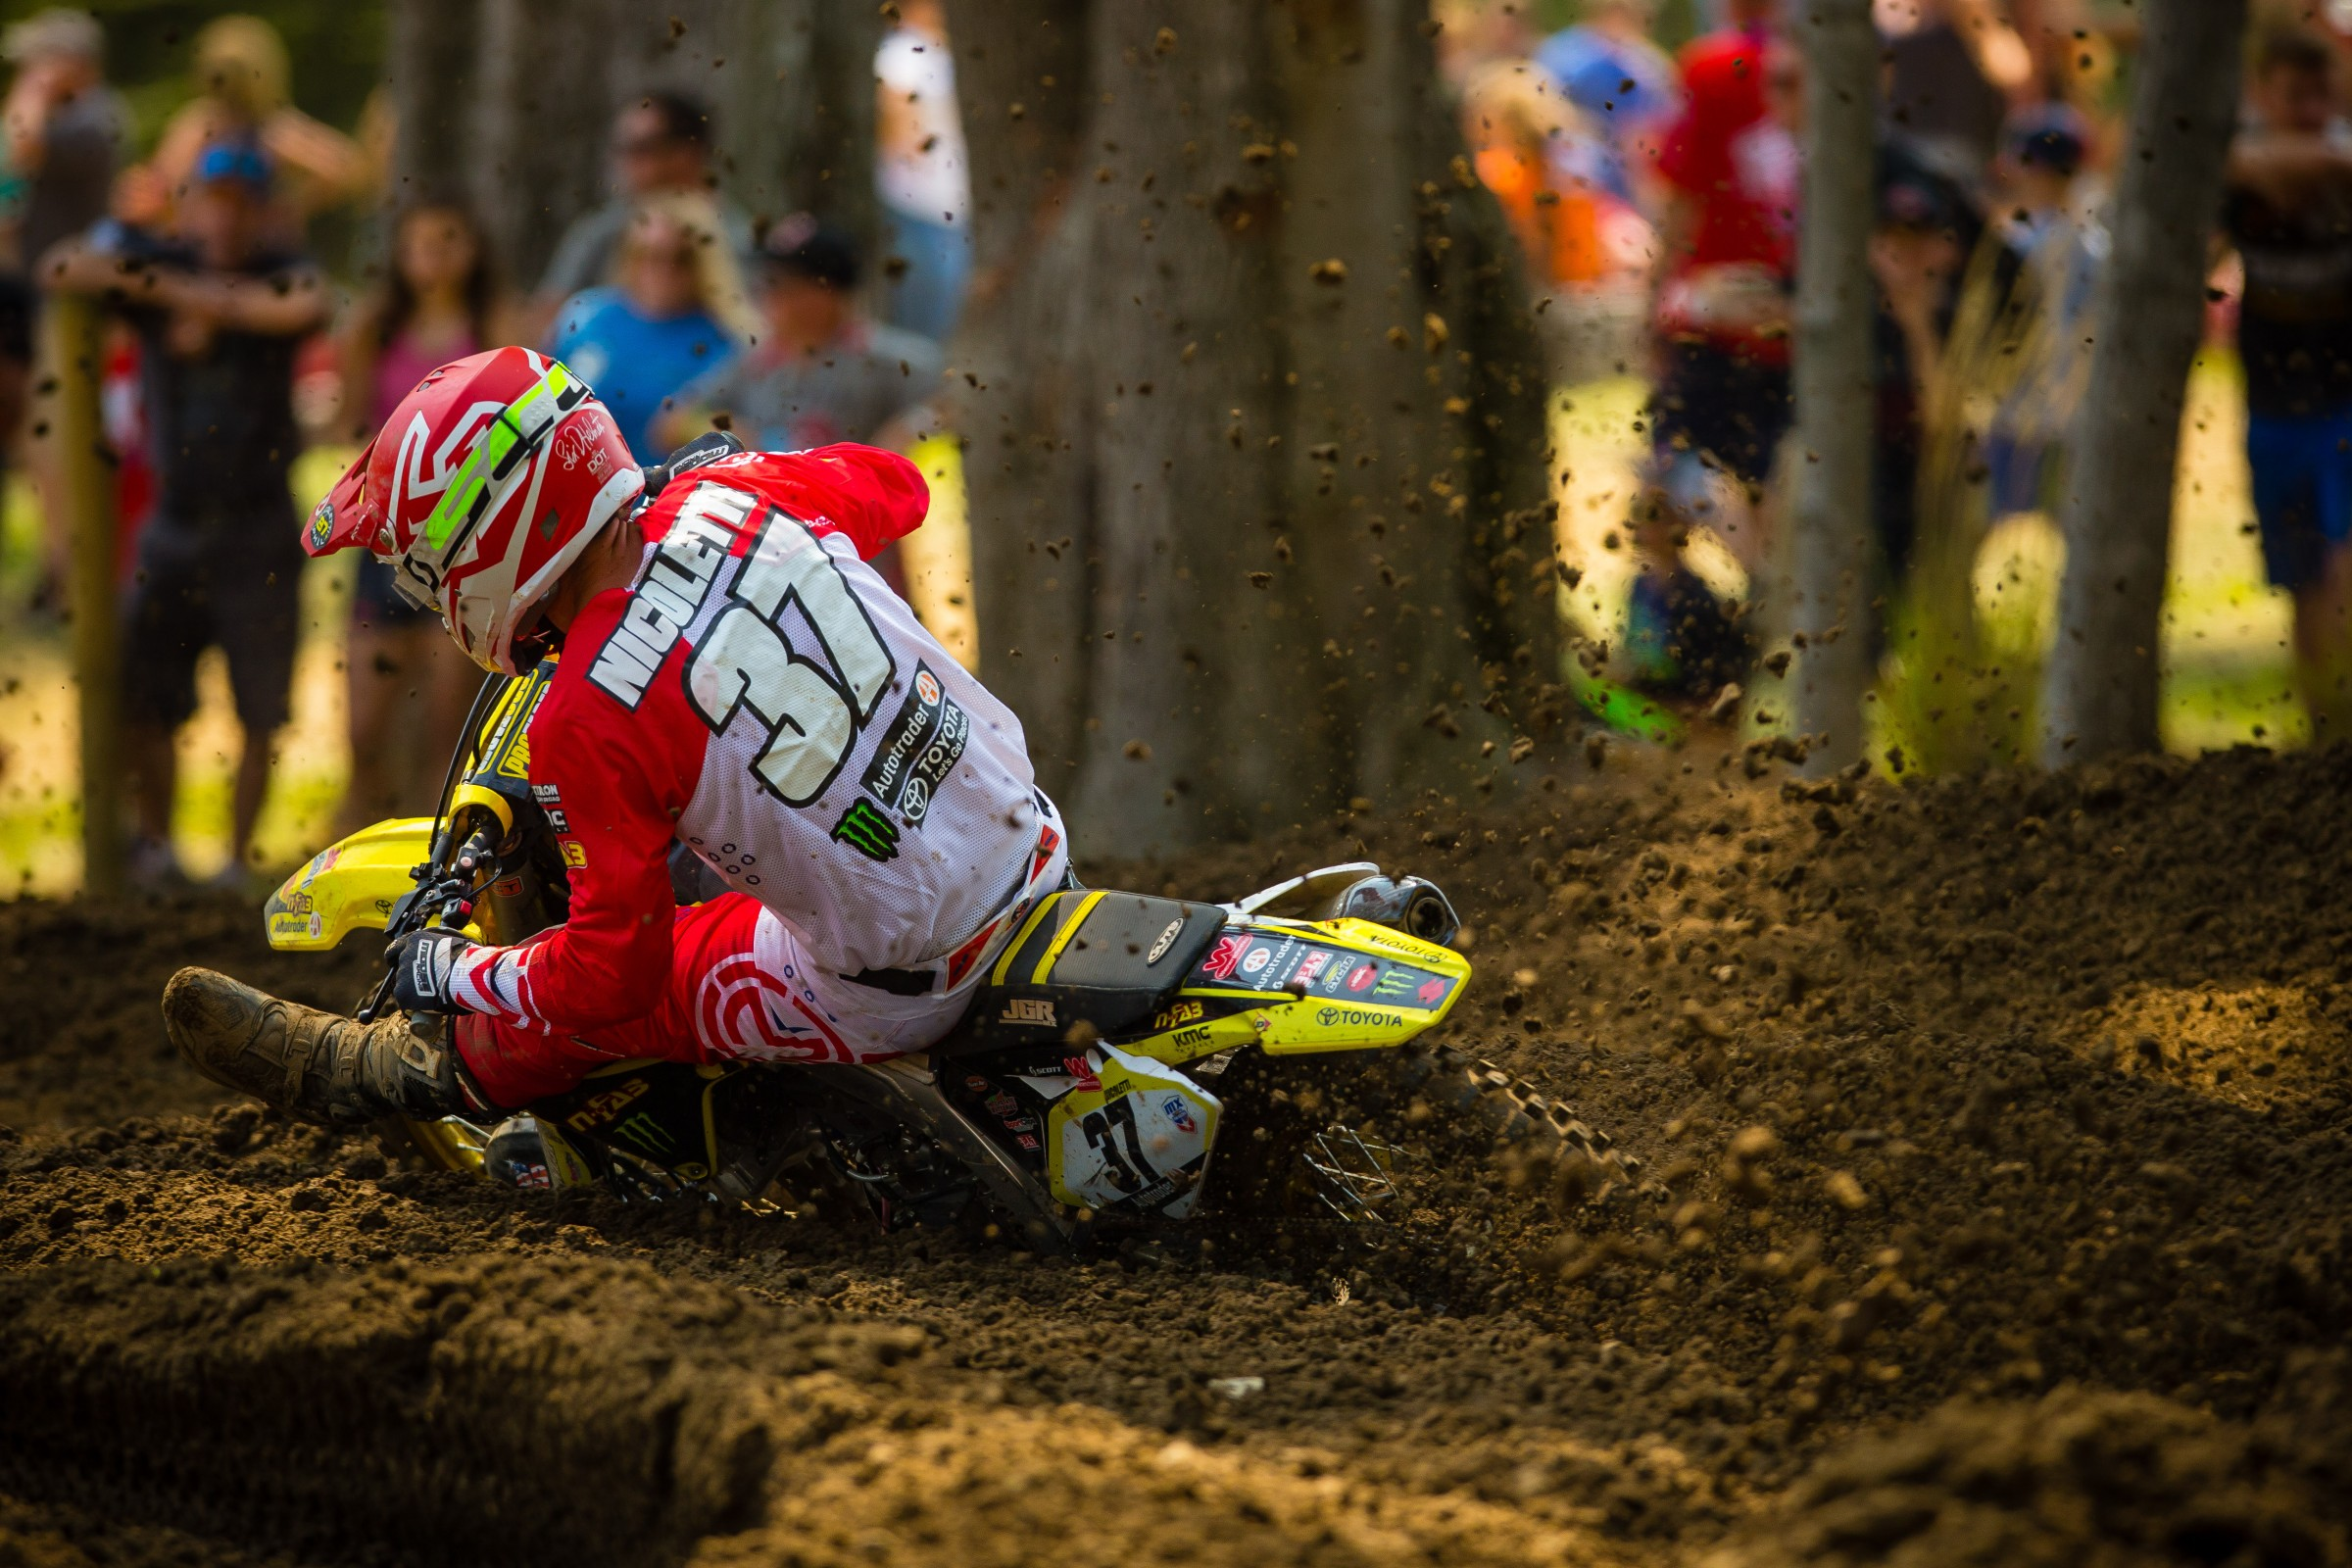 Since returning from injury at Unadilla, Nicoletti went 12-18-14-12-14-38.